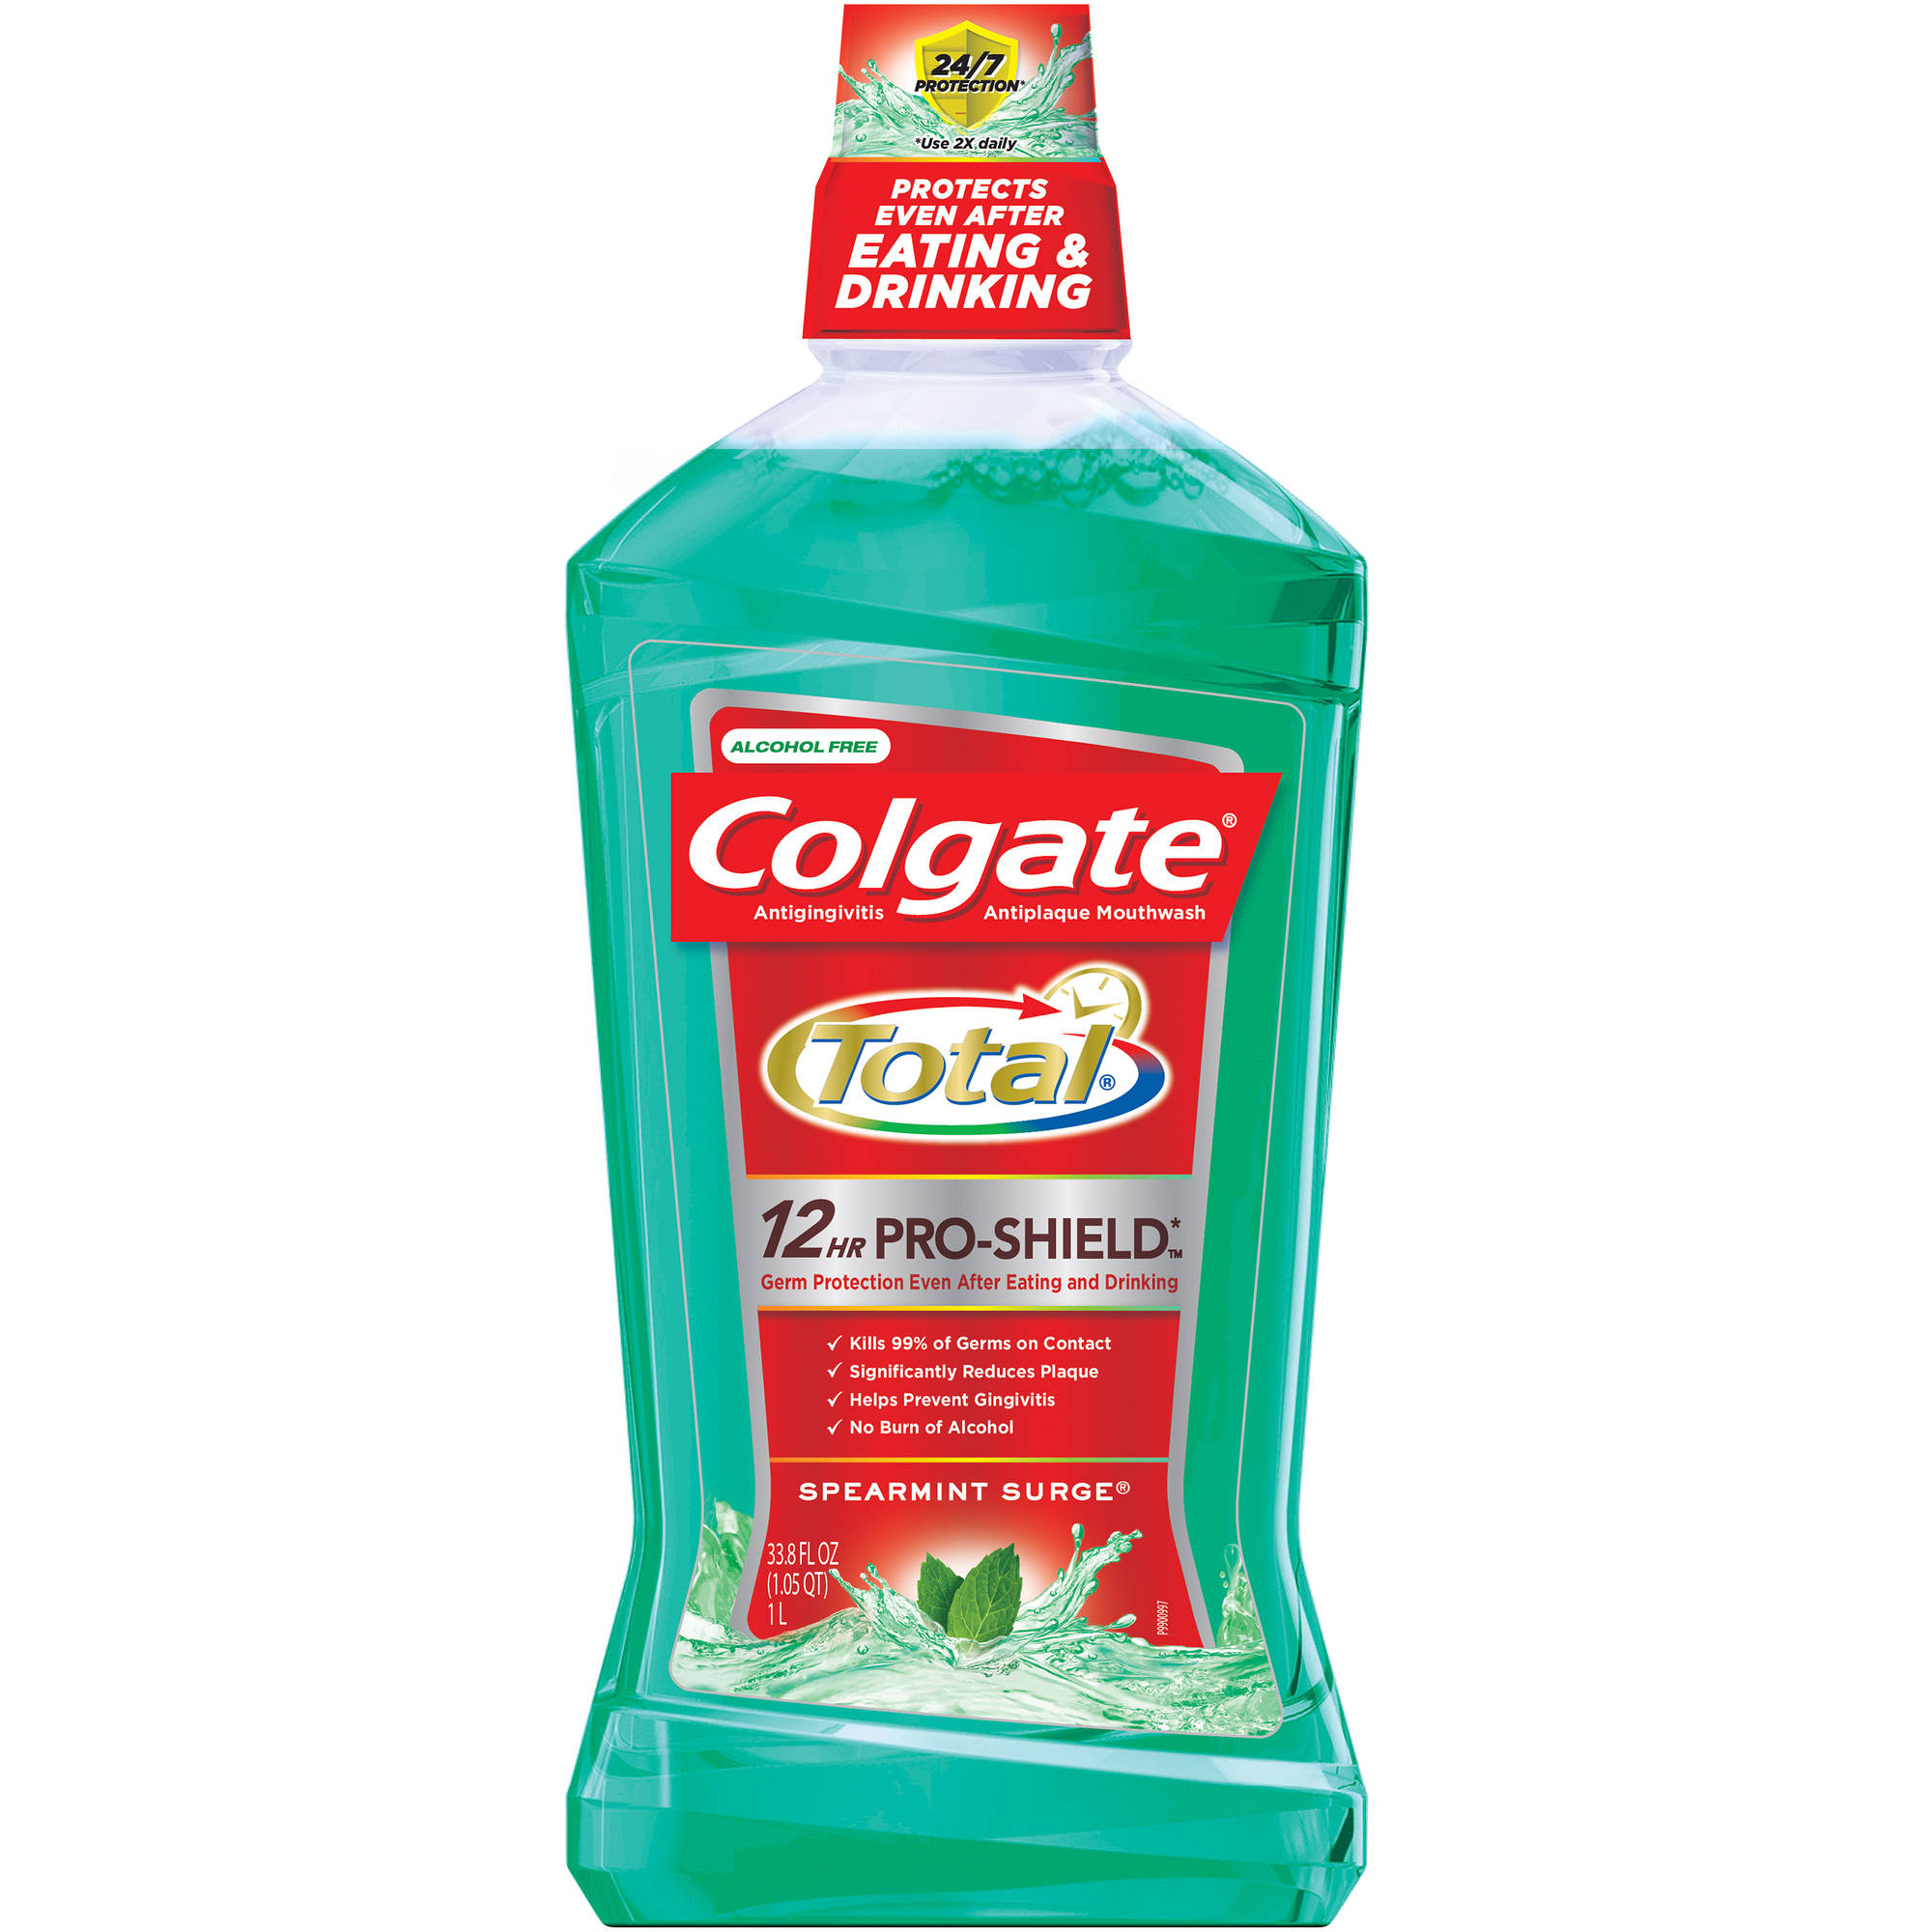 Colgate Total Advanced Pro-Shield Spearmint Surge Mouthwash, 33.8 fl oz